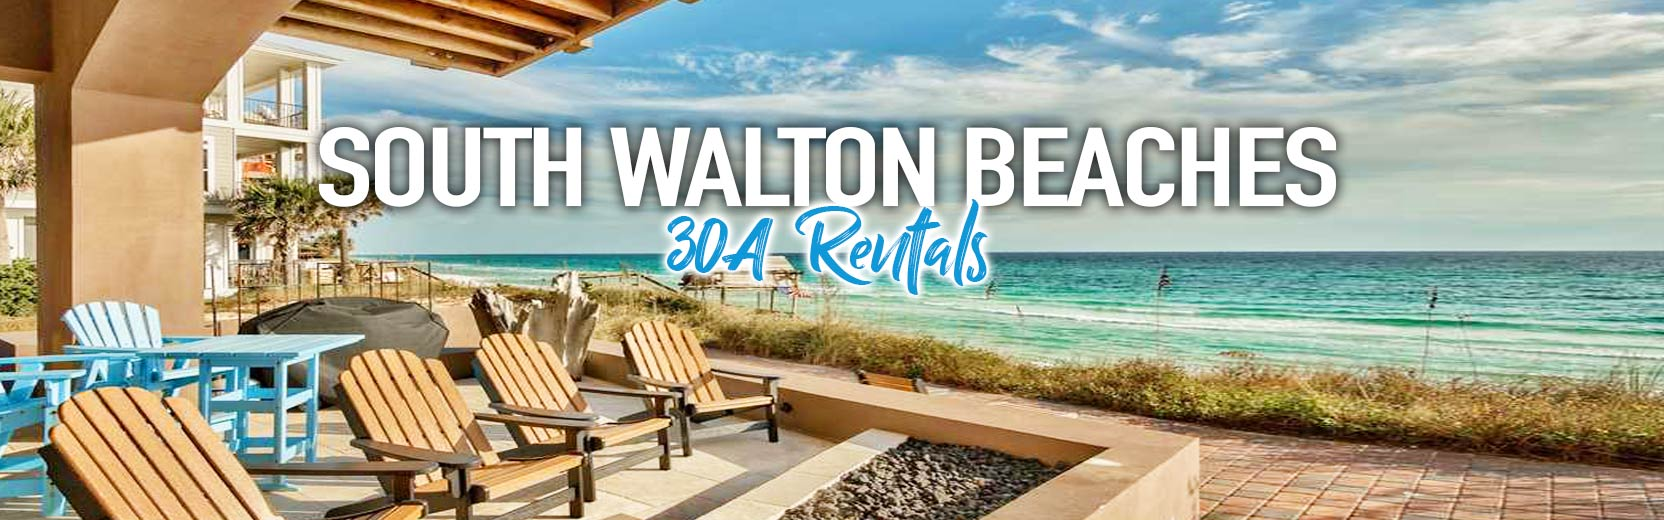 30A Beaches Vacation Rentals